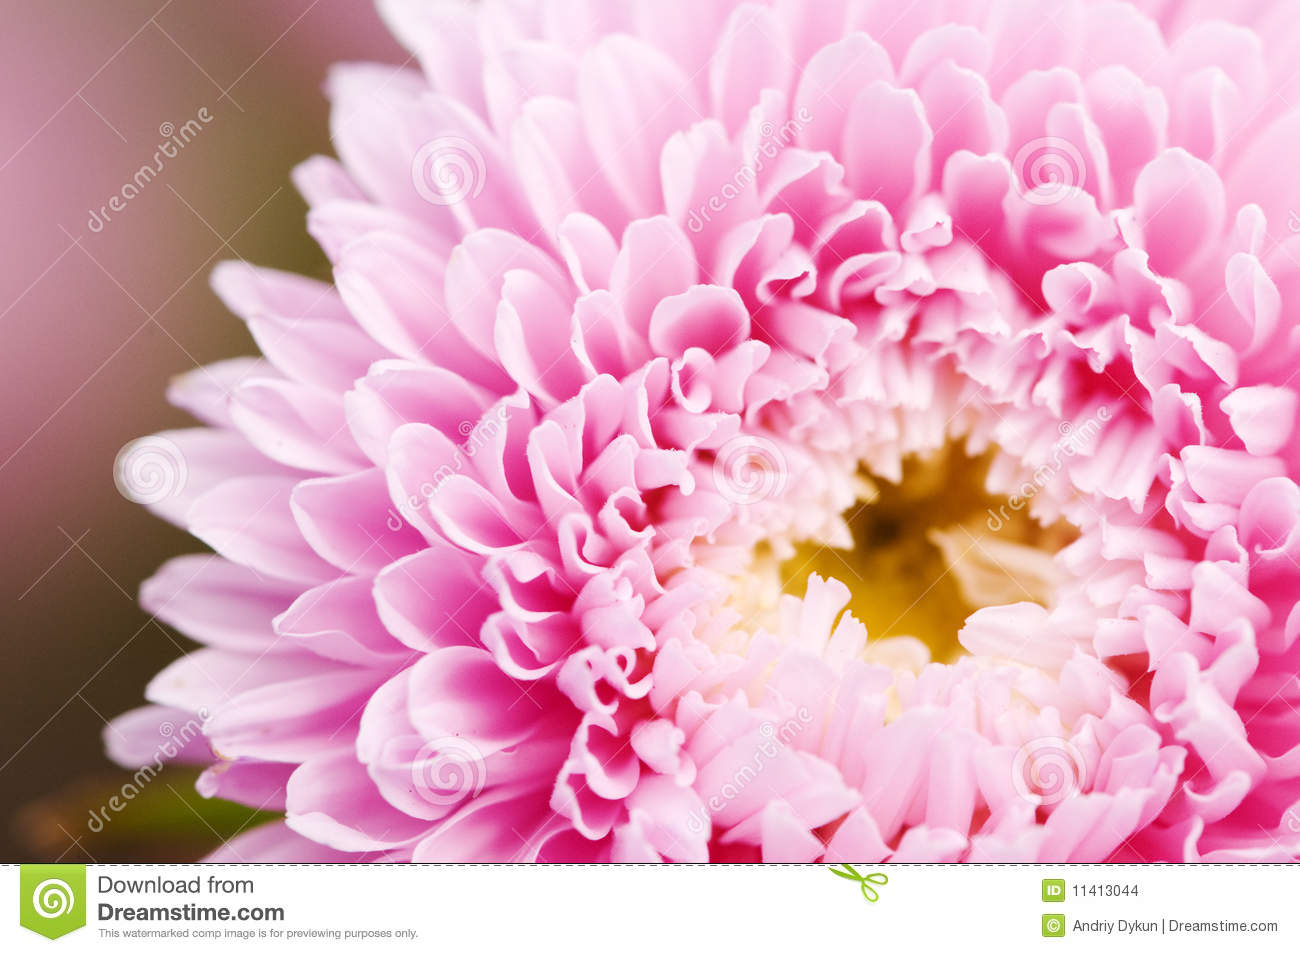 pink aster flower stock images  image, Beautiful flower